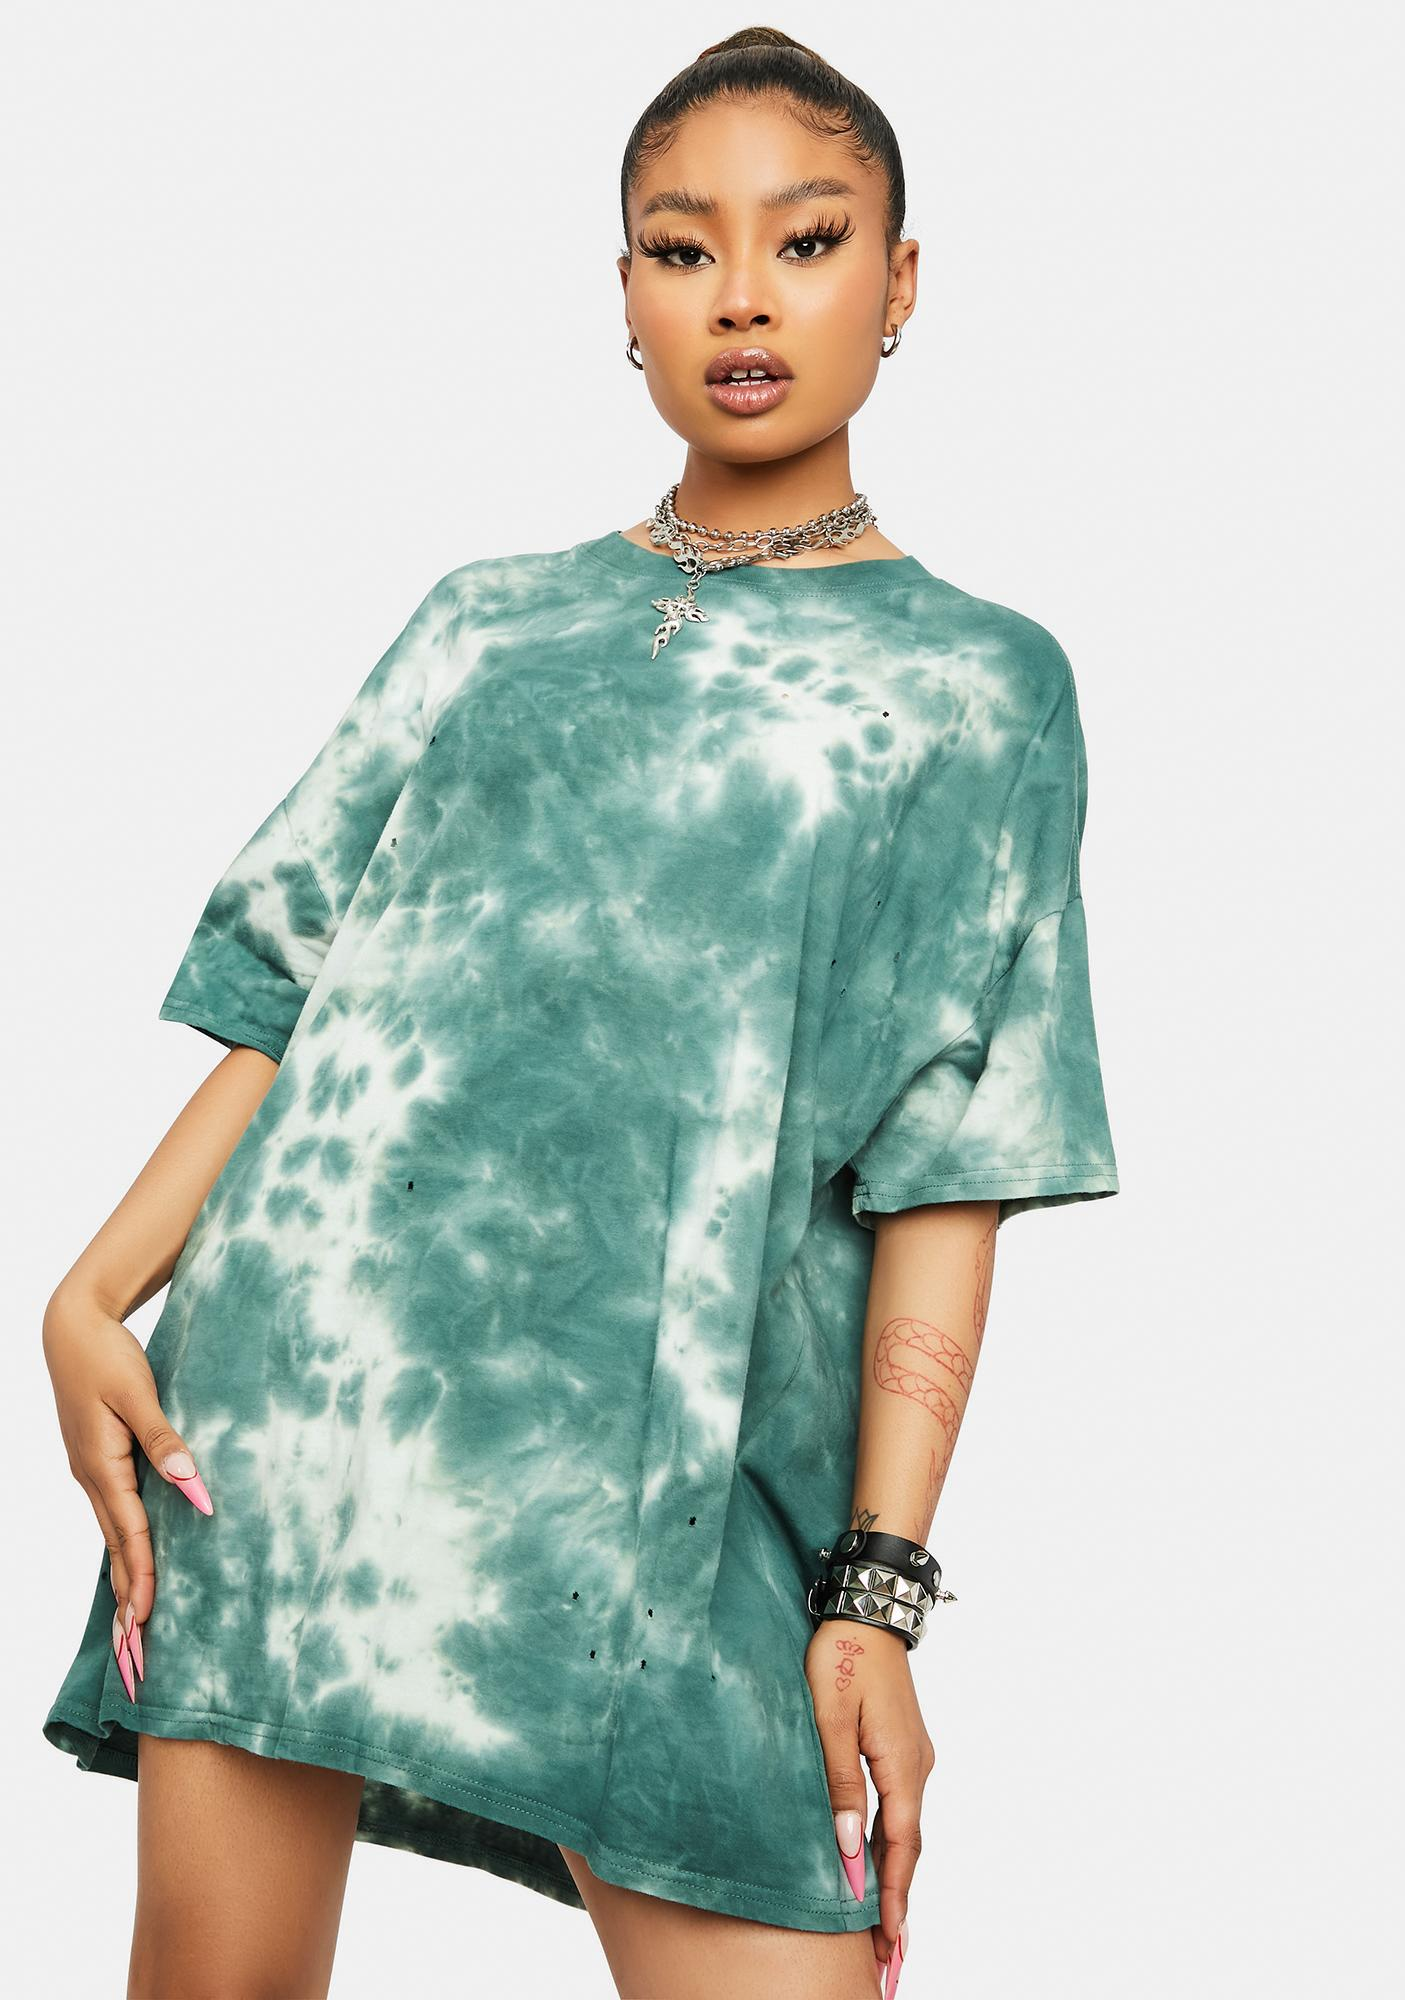 Teal Trippin' Territory Tie Dye Distressed Oversized T- Shirt